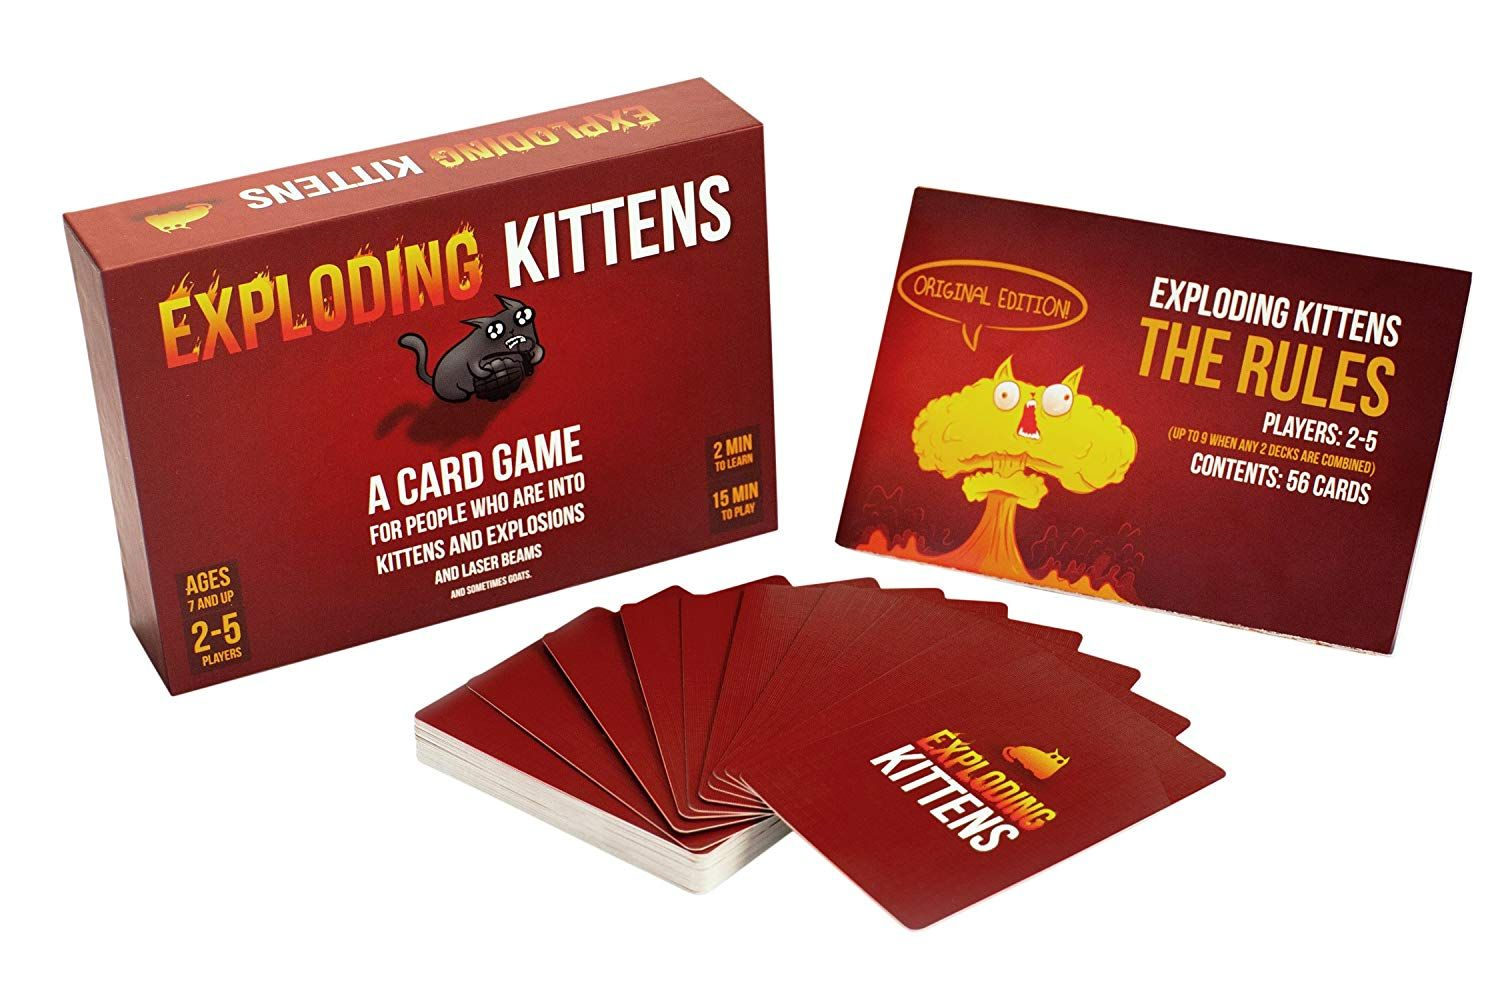 Exploding Kittens Card Game Thingsbuyonline Exploding Kittens Card Game Exploding Kittens Card Games